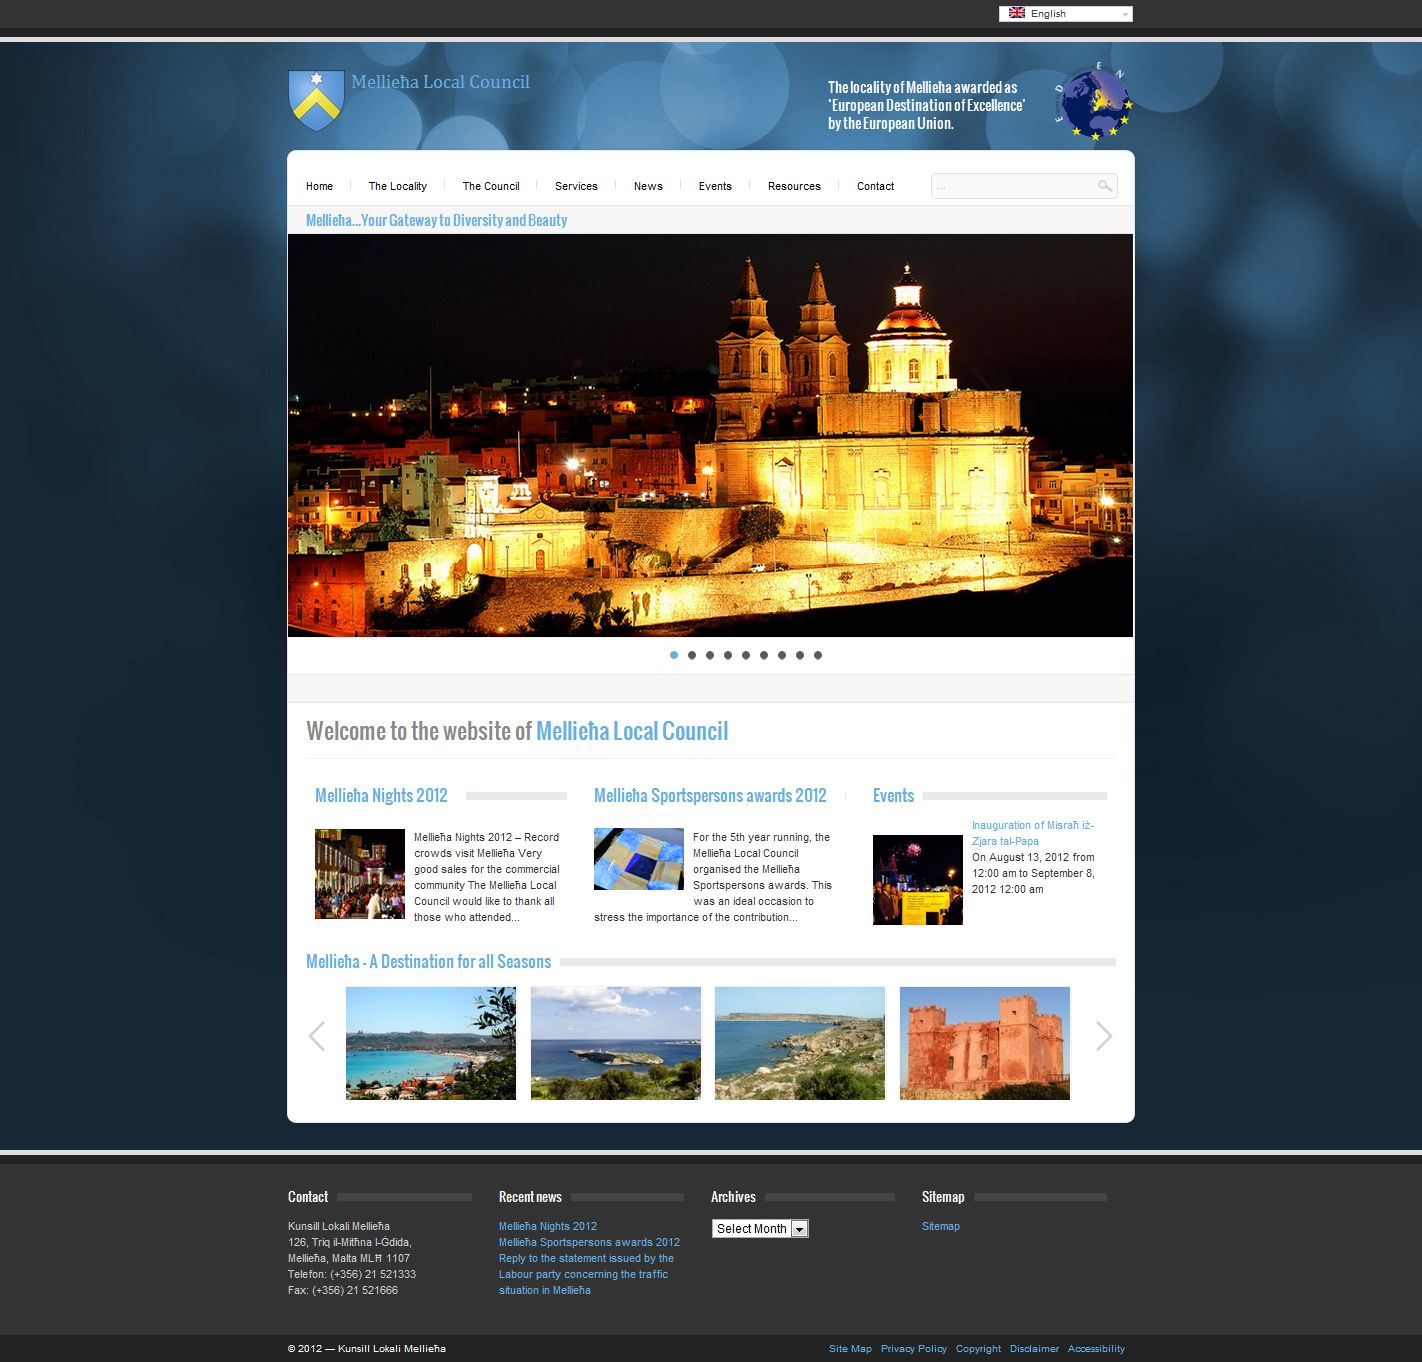 Mellieha Local Council with a new updated website